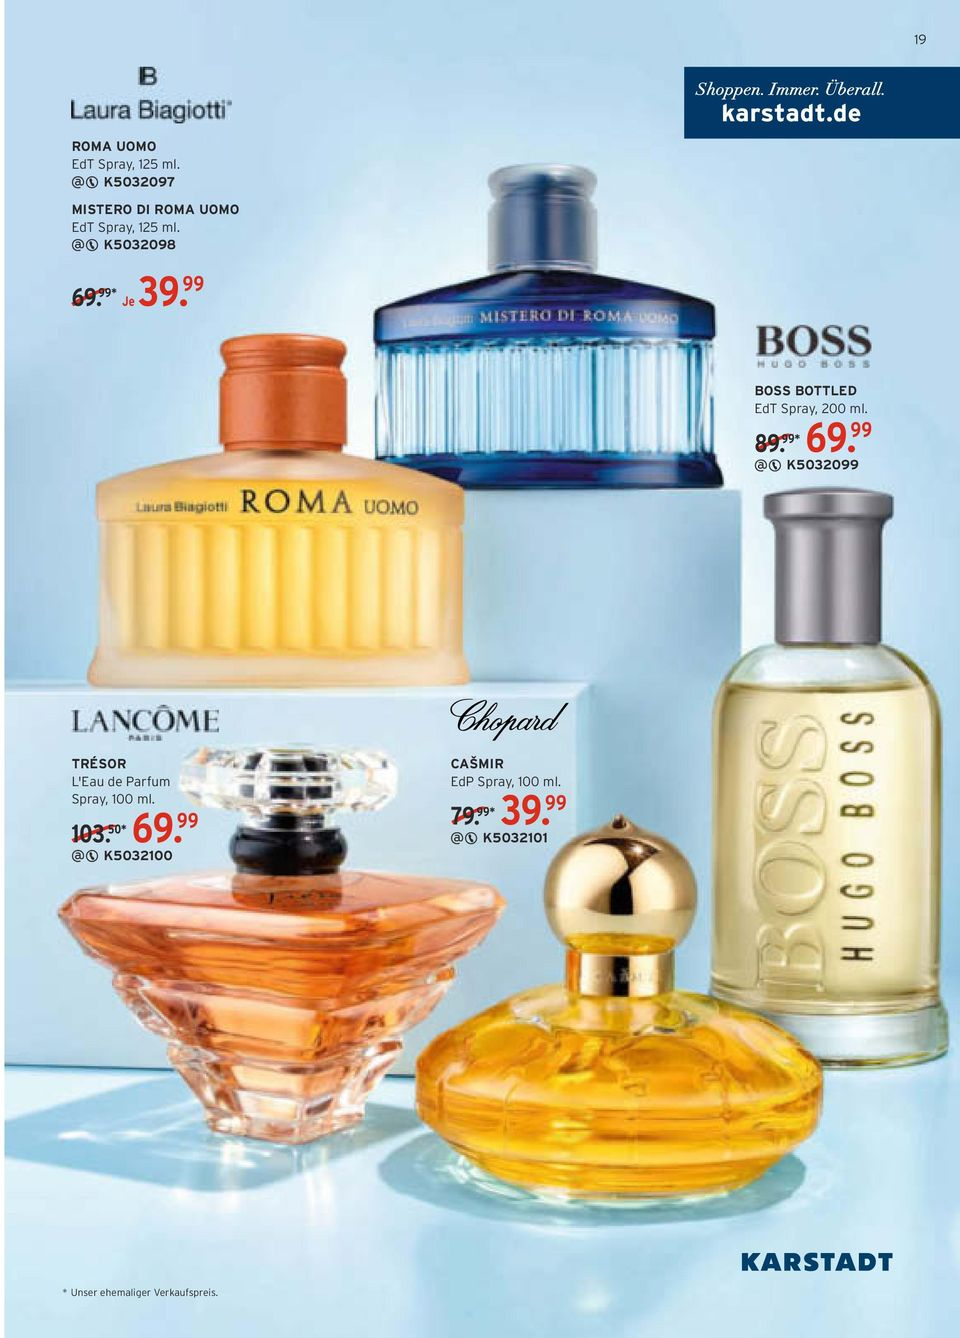 99 BOSS BOTTLED EdT Spray, 200 ml. 89. 99* 69.